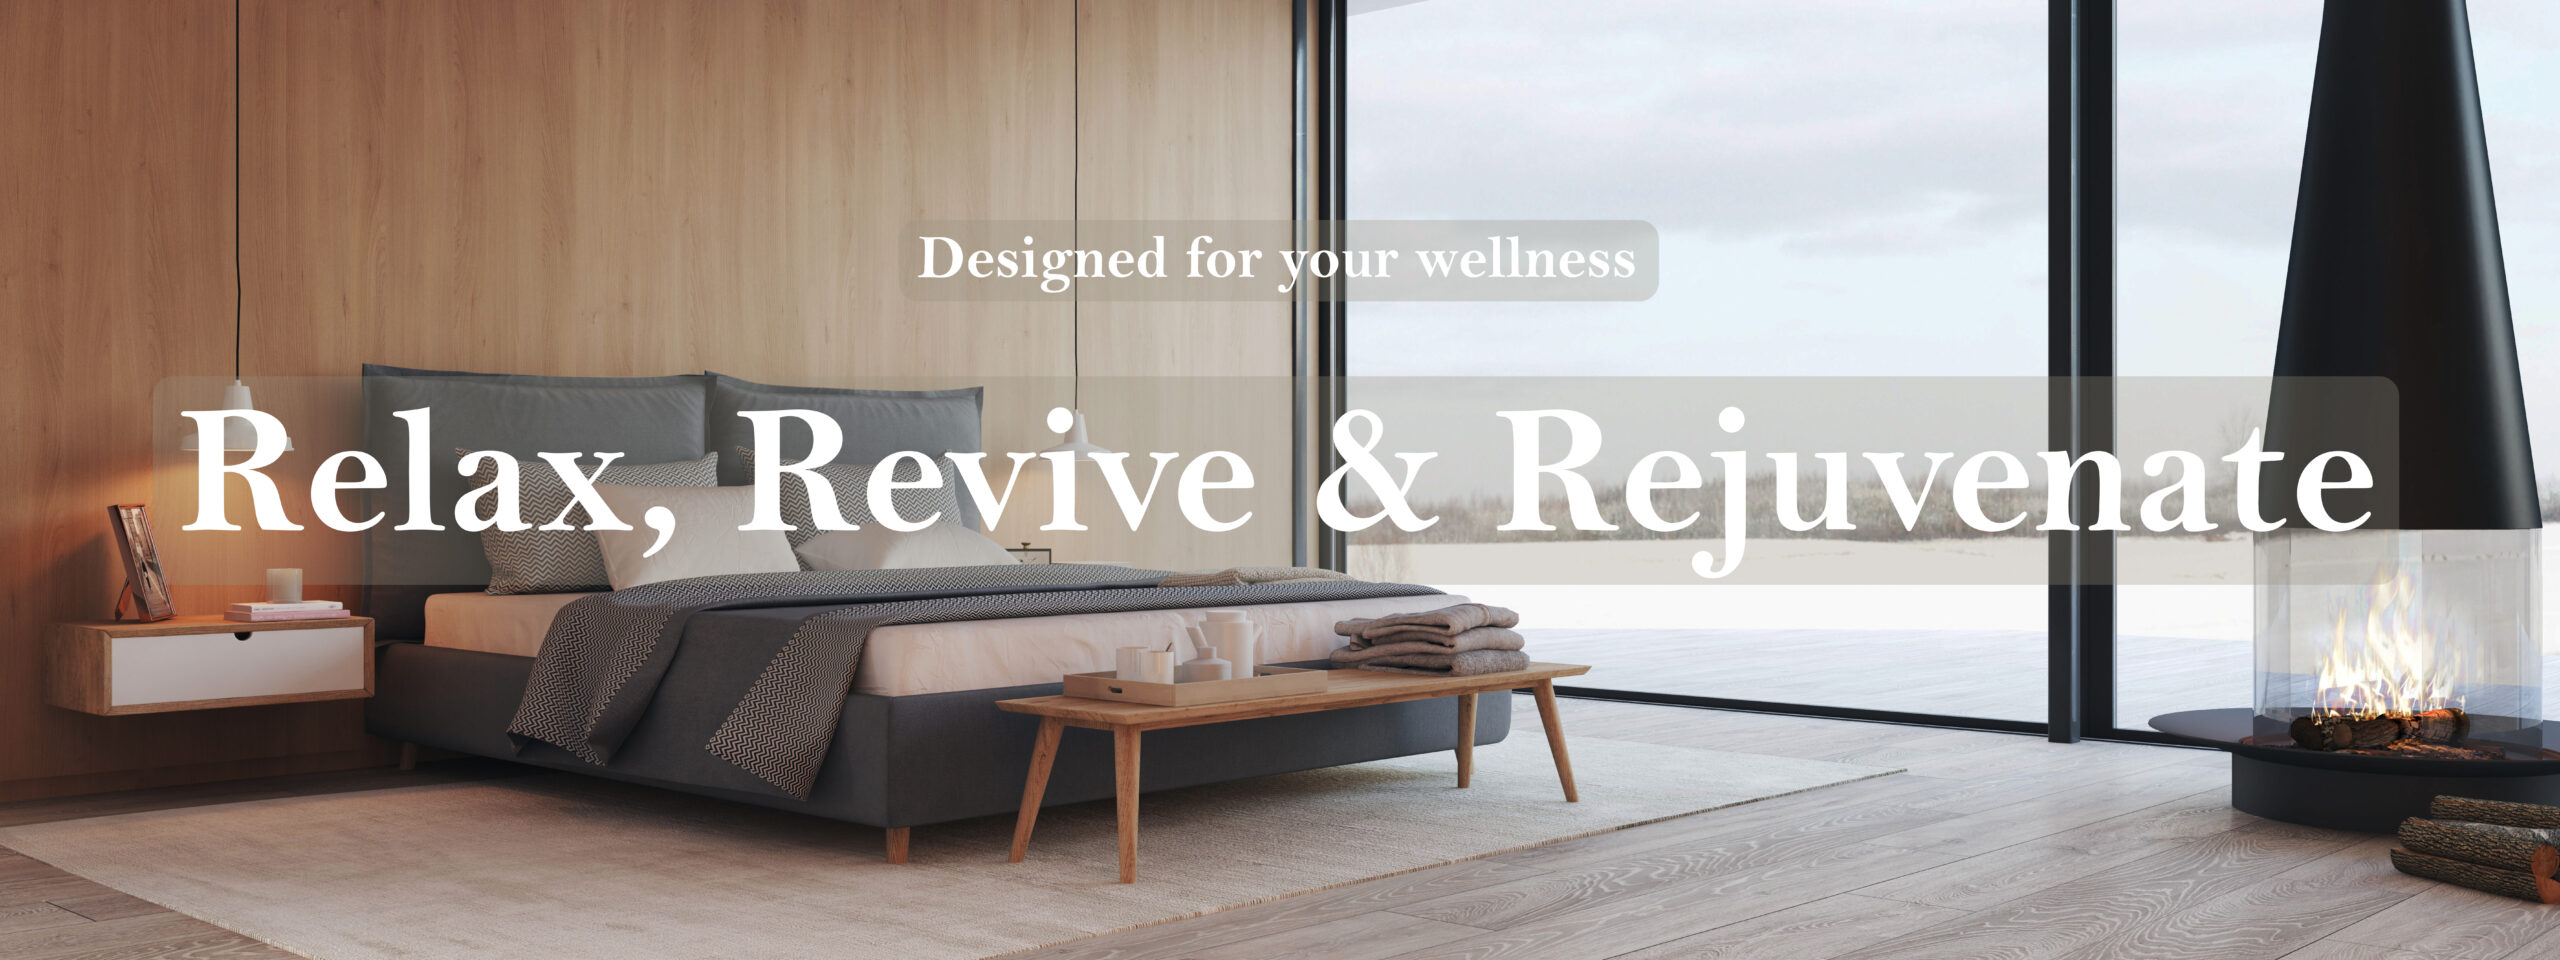 designed for your wellness Italian Beds